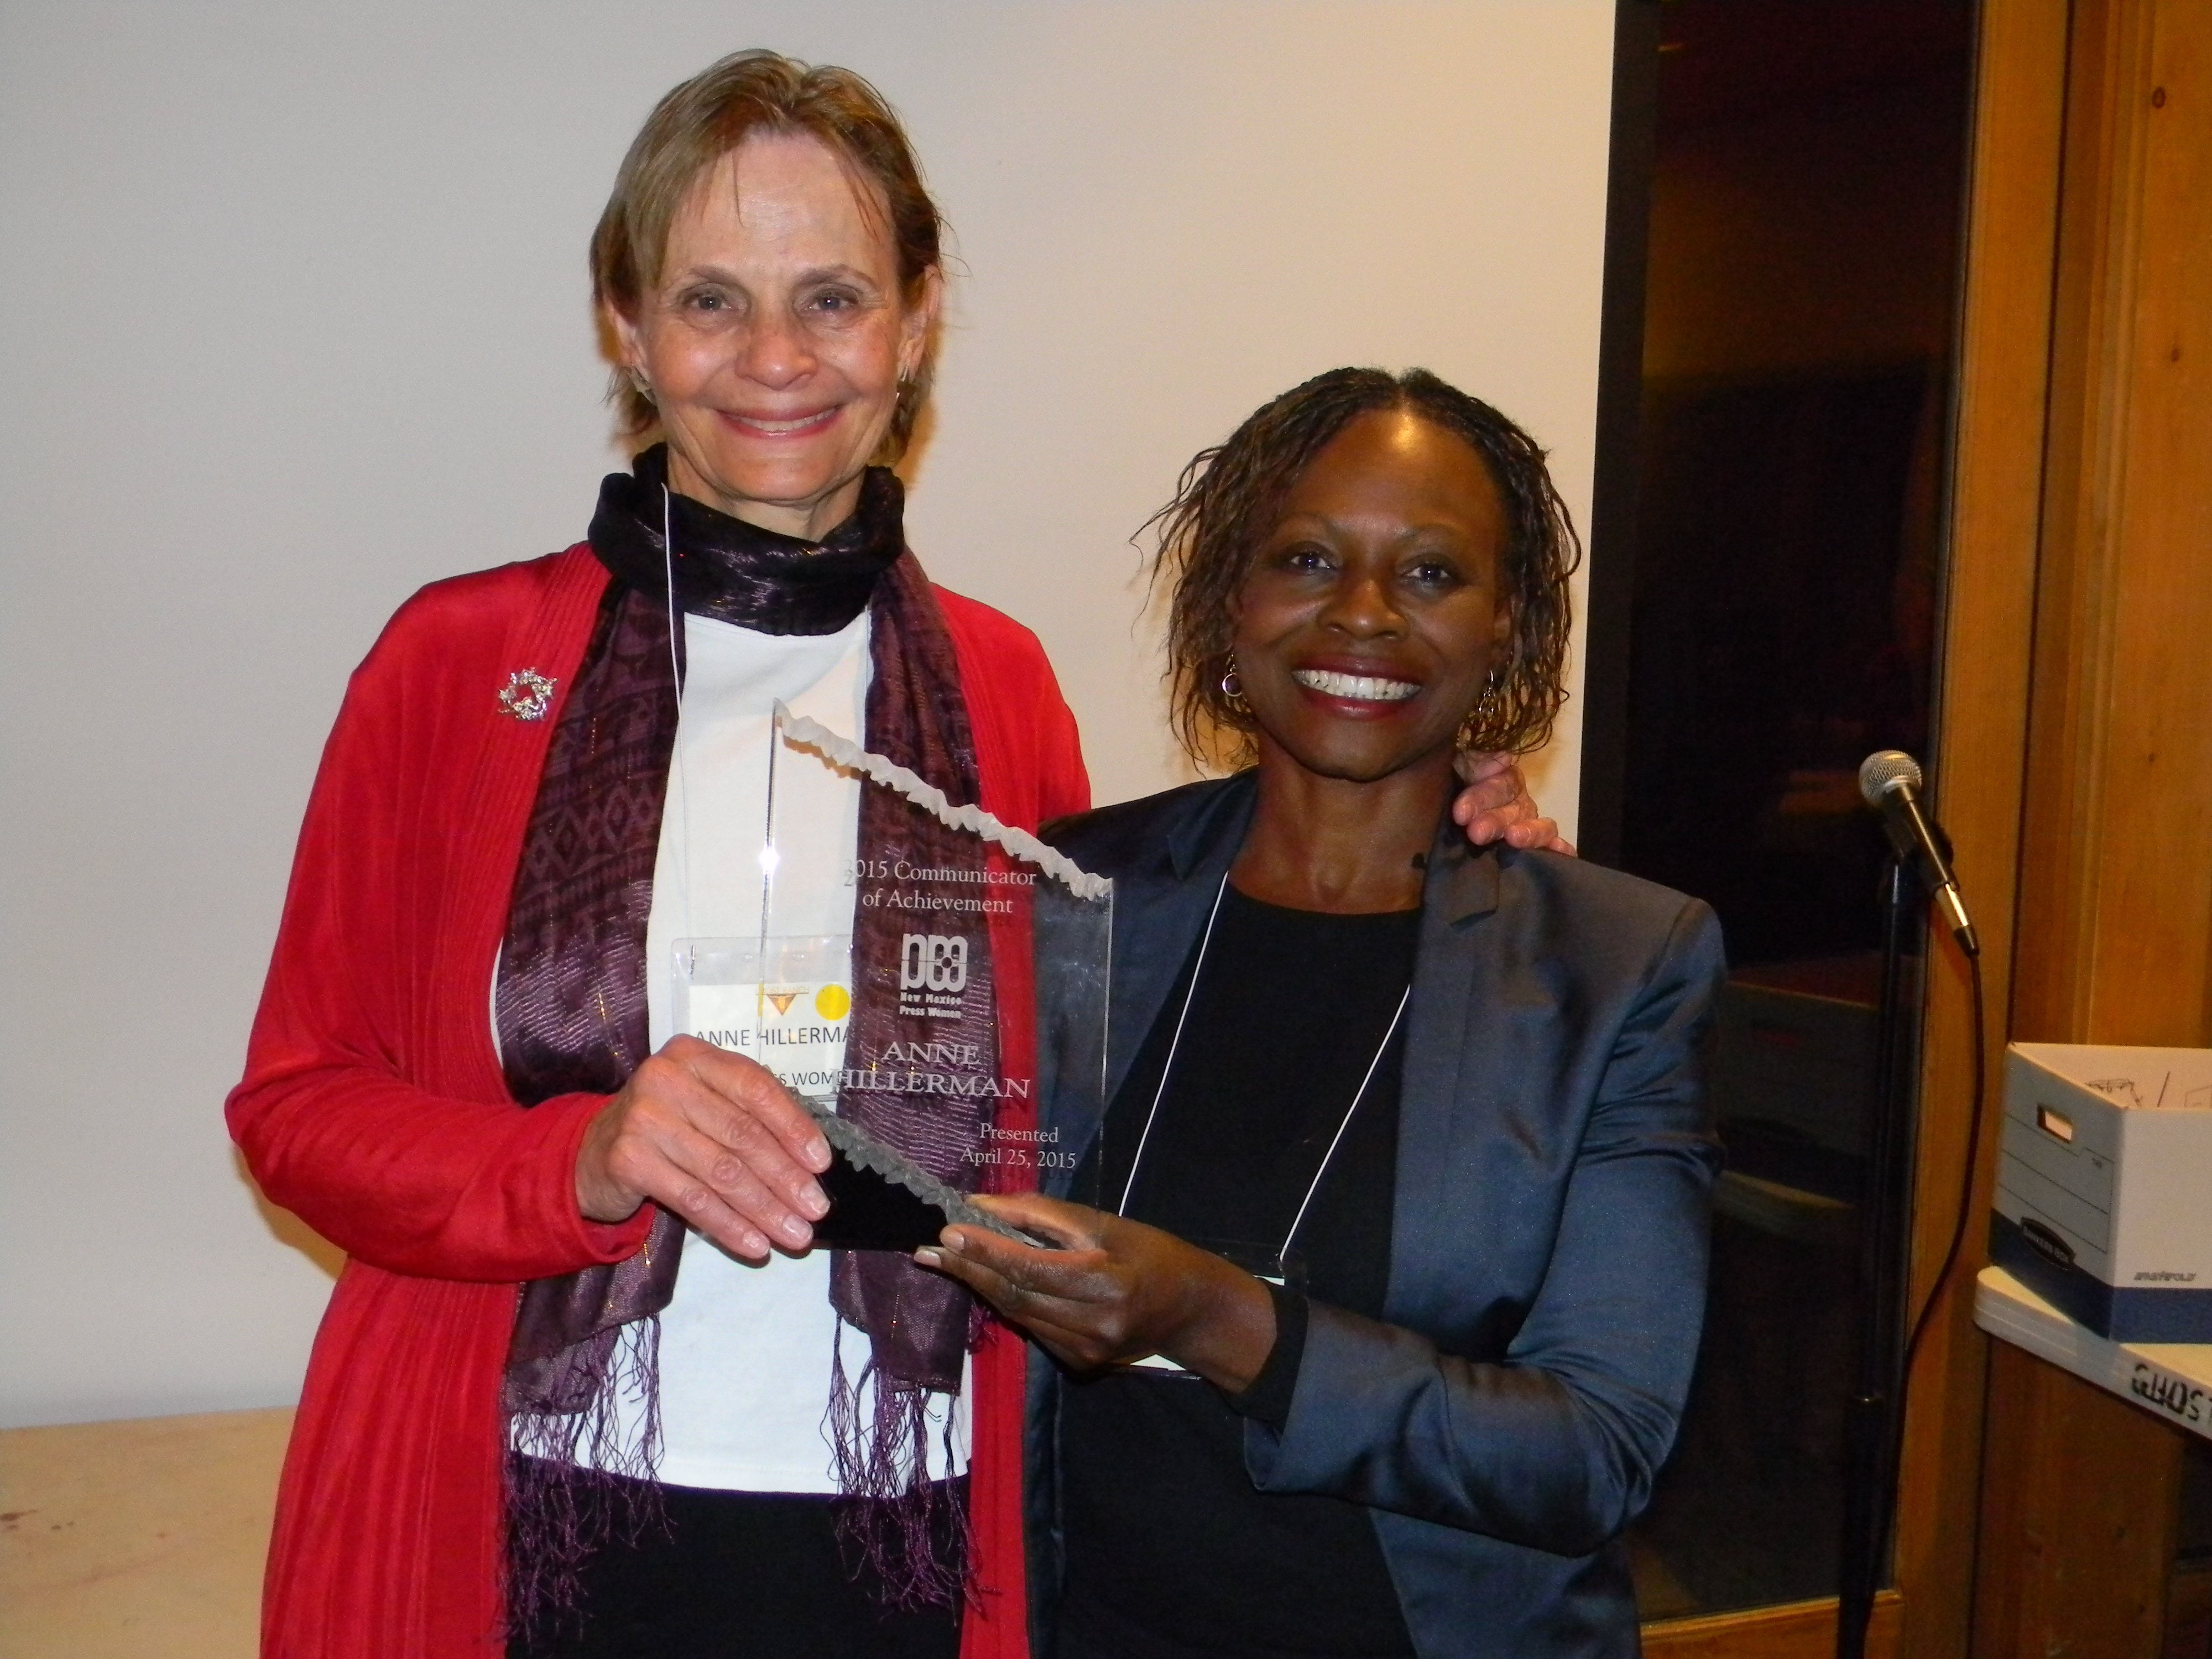 Anne Hillerman accepting the CoA award from NMPW Conference Chair Sherri Burr at the 2015 NMPW Conference at Ghost Ranch